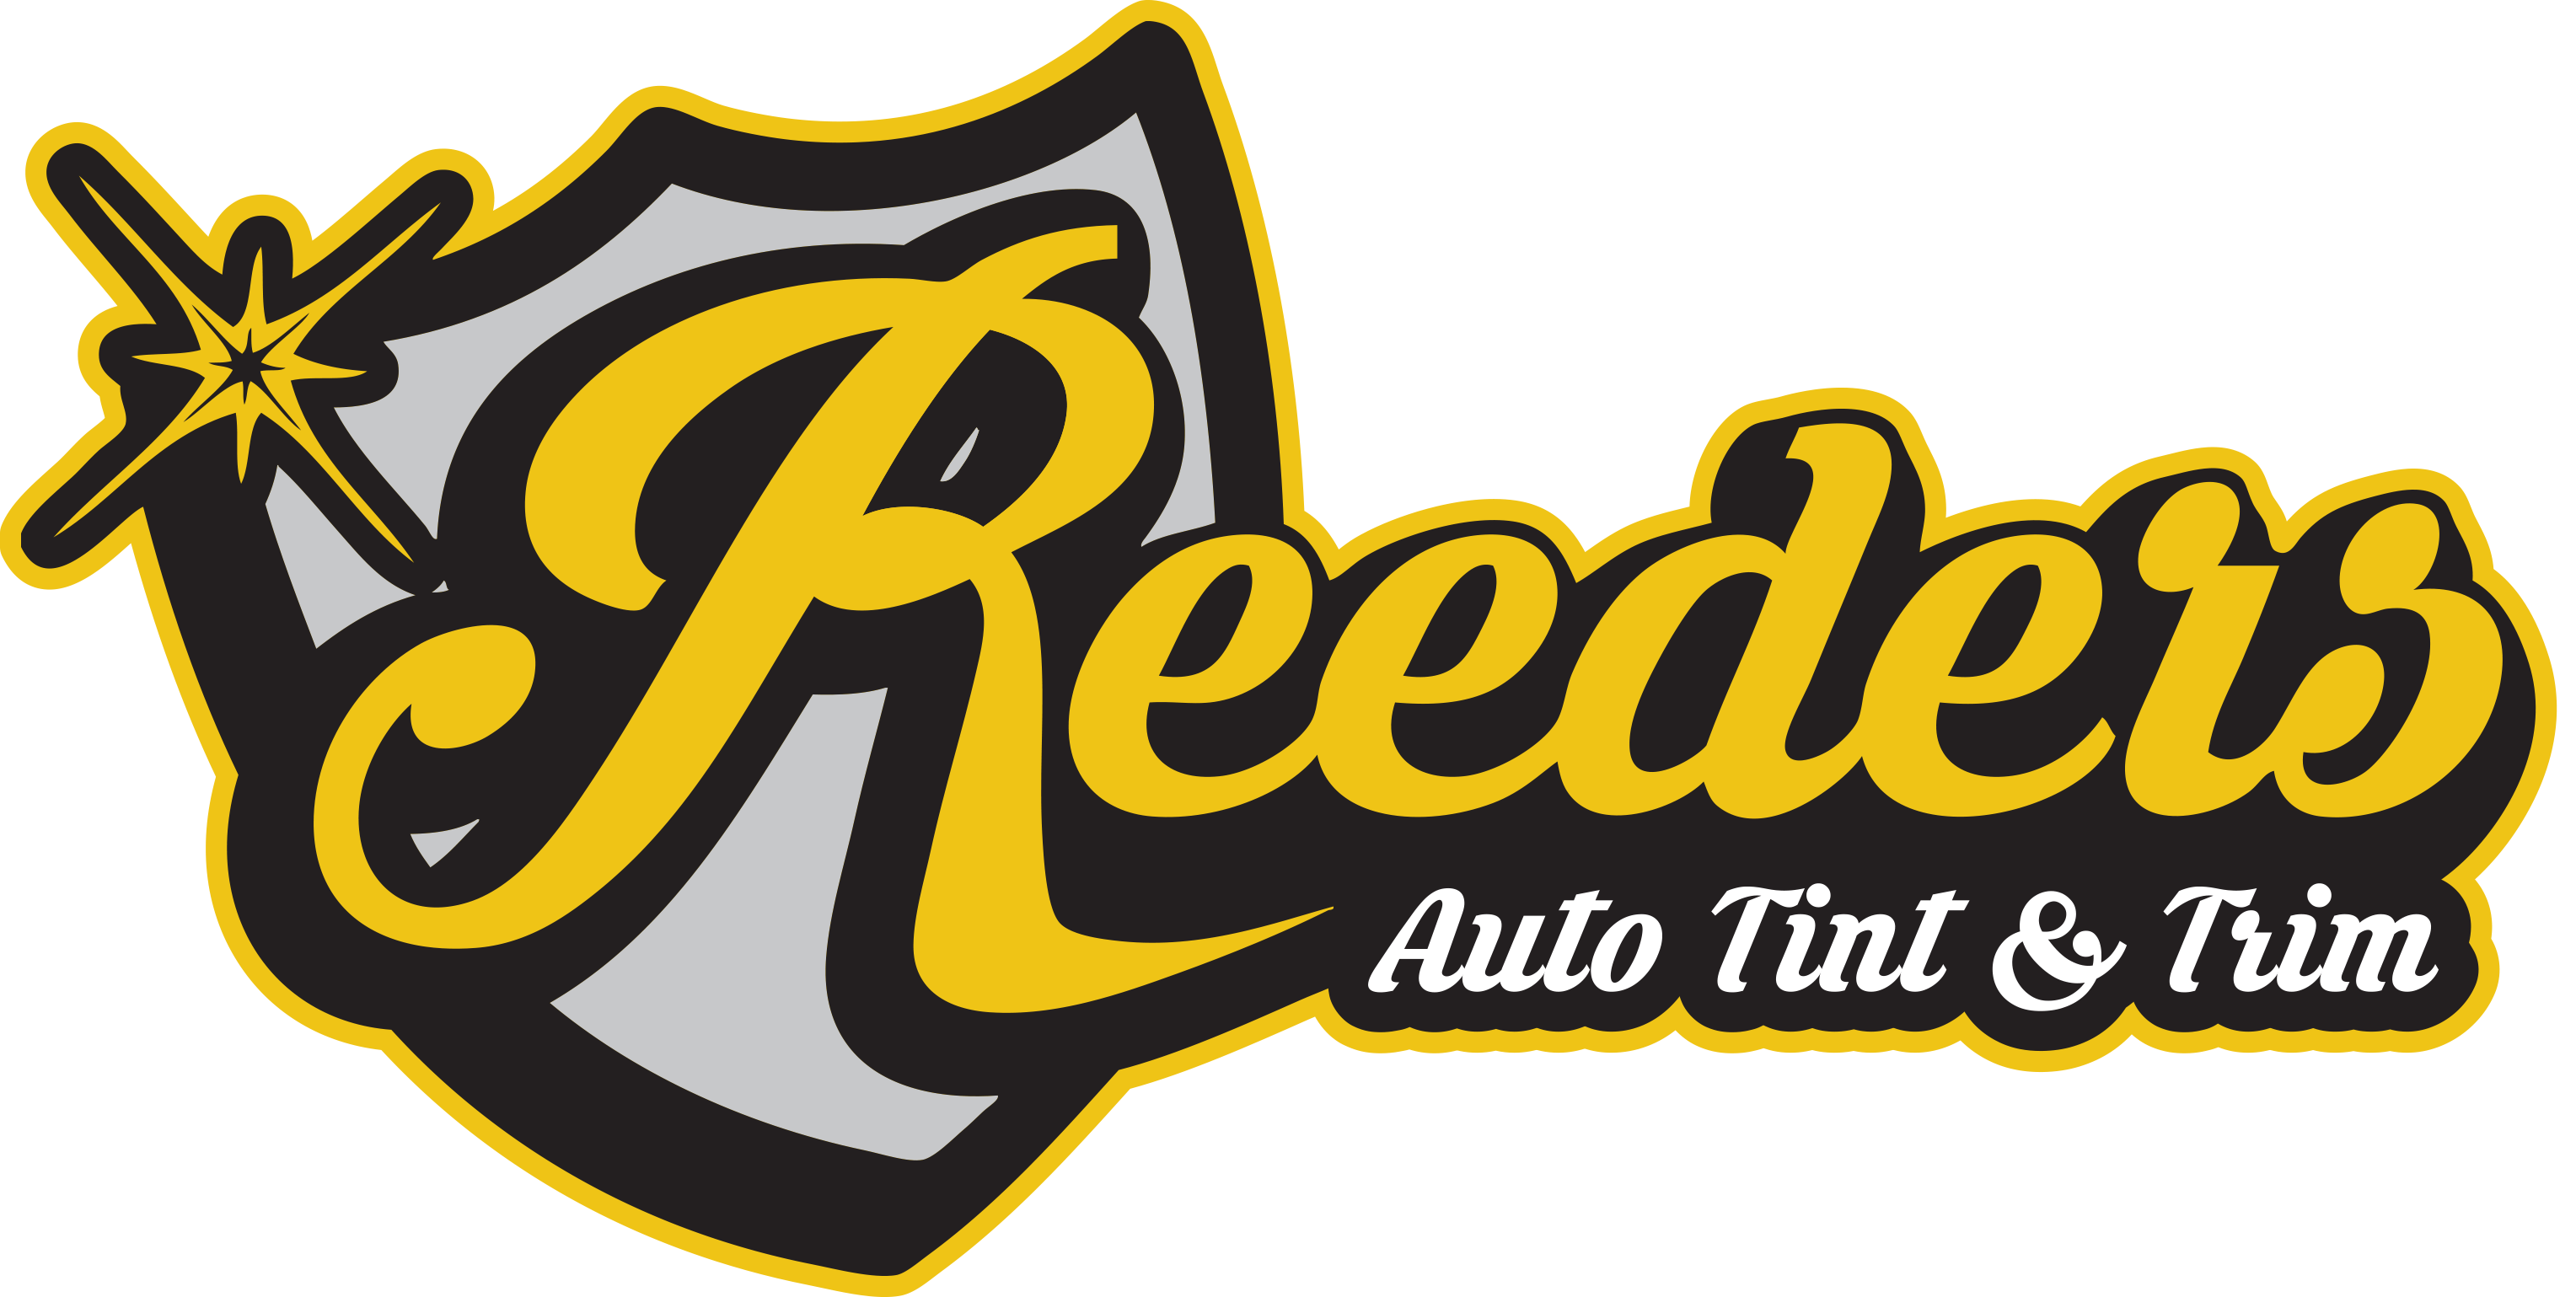 Reeder's Auto Tint & Ceramic Coatings | The Most Reviewed Window Tint Shop in Pinellas